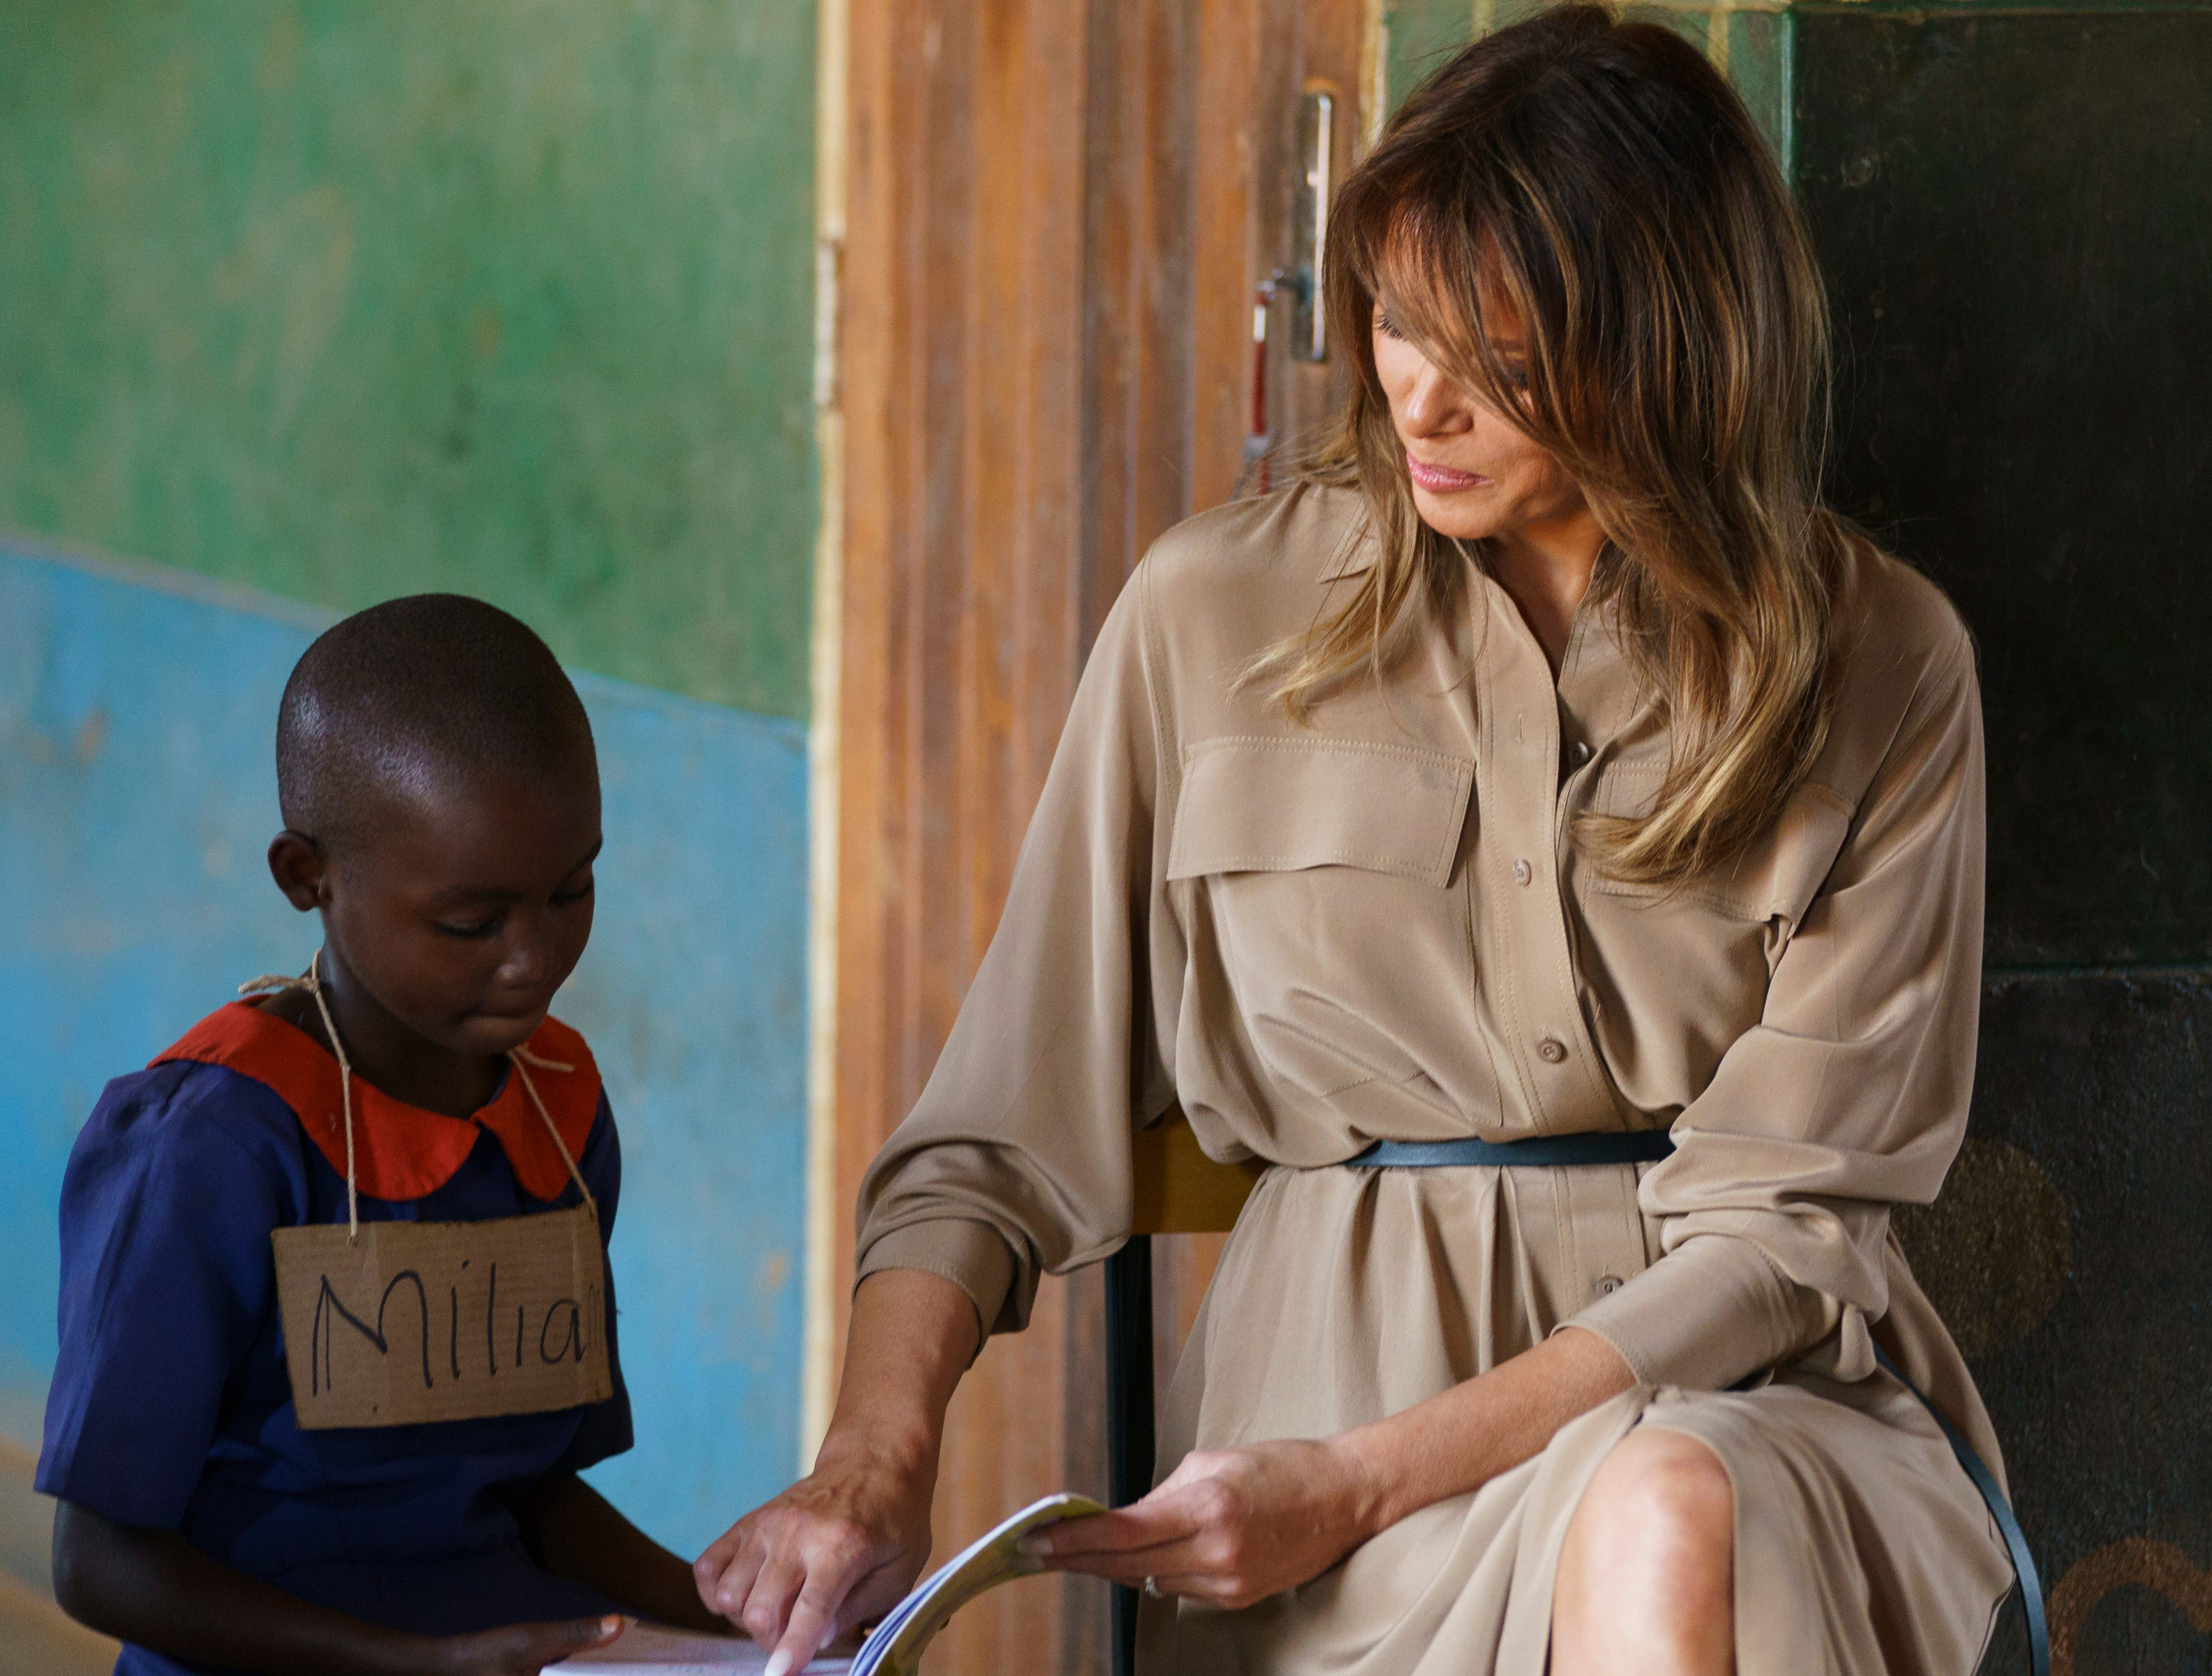 Melania Trump helps a student during the first lady's visit to a language class at Chipala Primary School, in Lilongwe, Malawi, Thursday, Oct. 4, 2018.